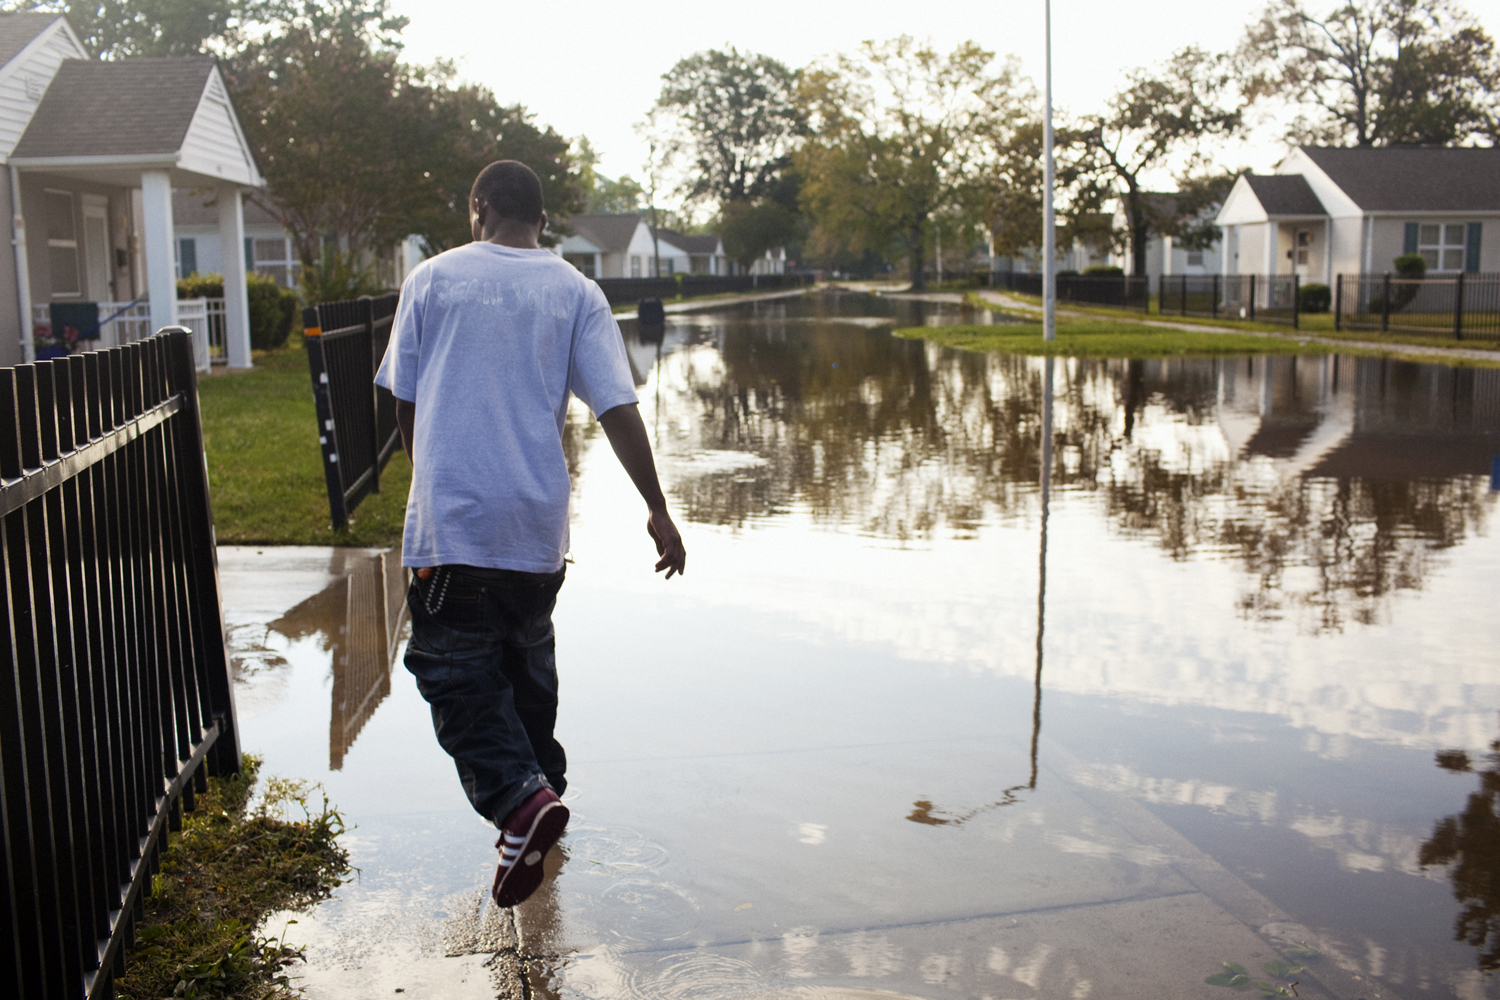 August 28, 2011, Portsmouth, Virginia. A young man walks through a flooded street on Sunday after the storm.